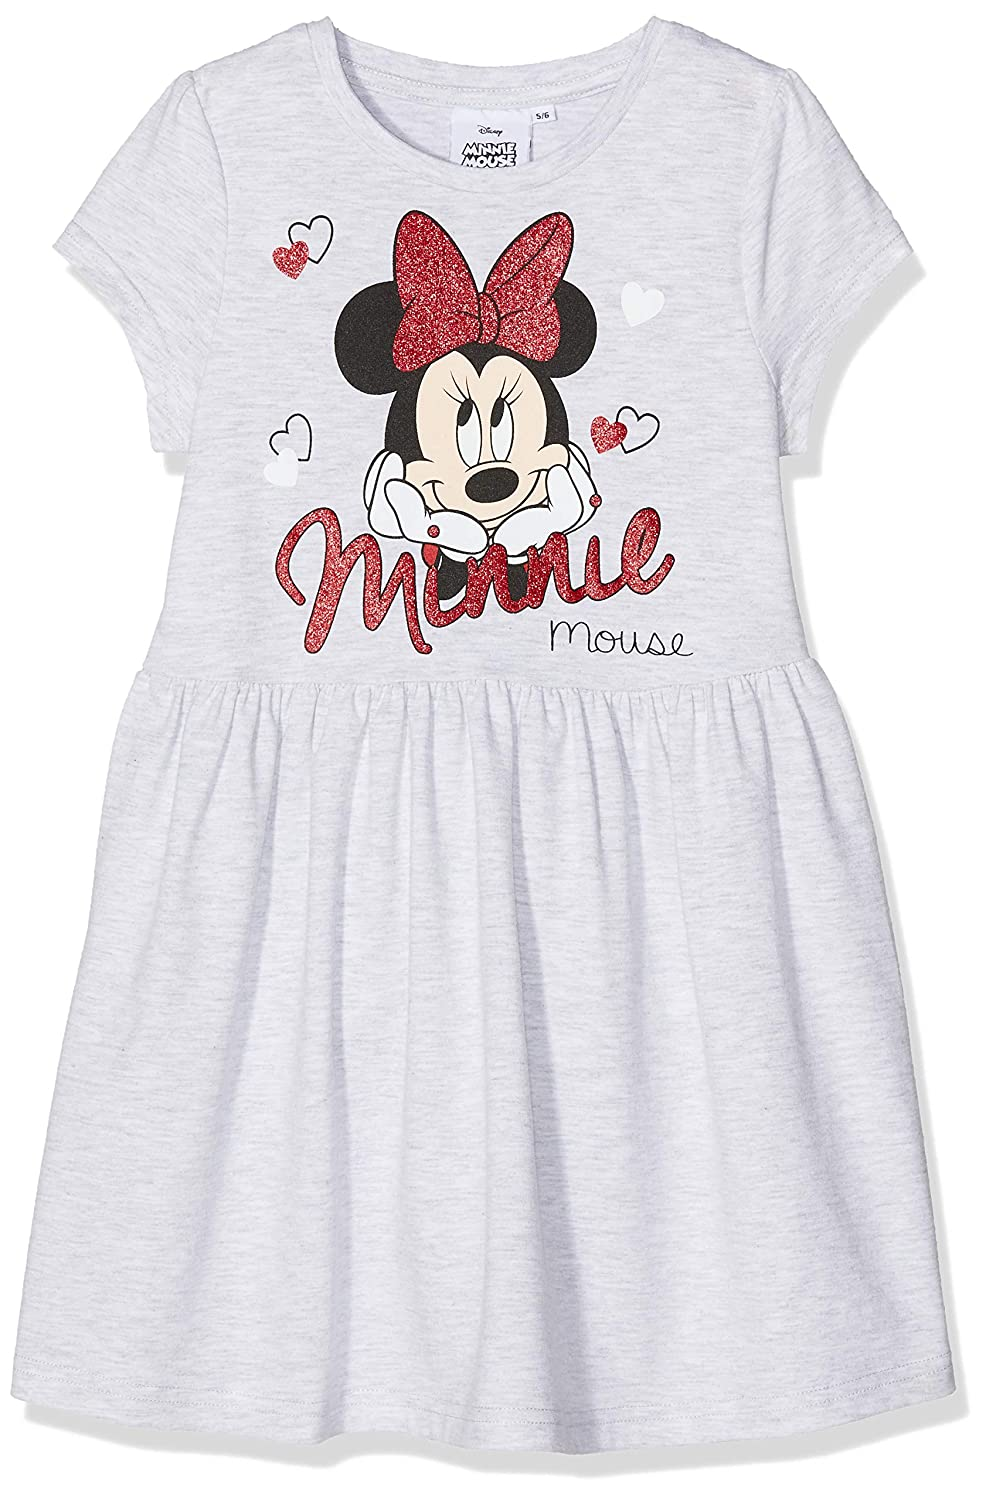 Disney Minnie Mouse Minnie Mouse Heads And Hearts, Vestito Bambina MO51399